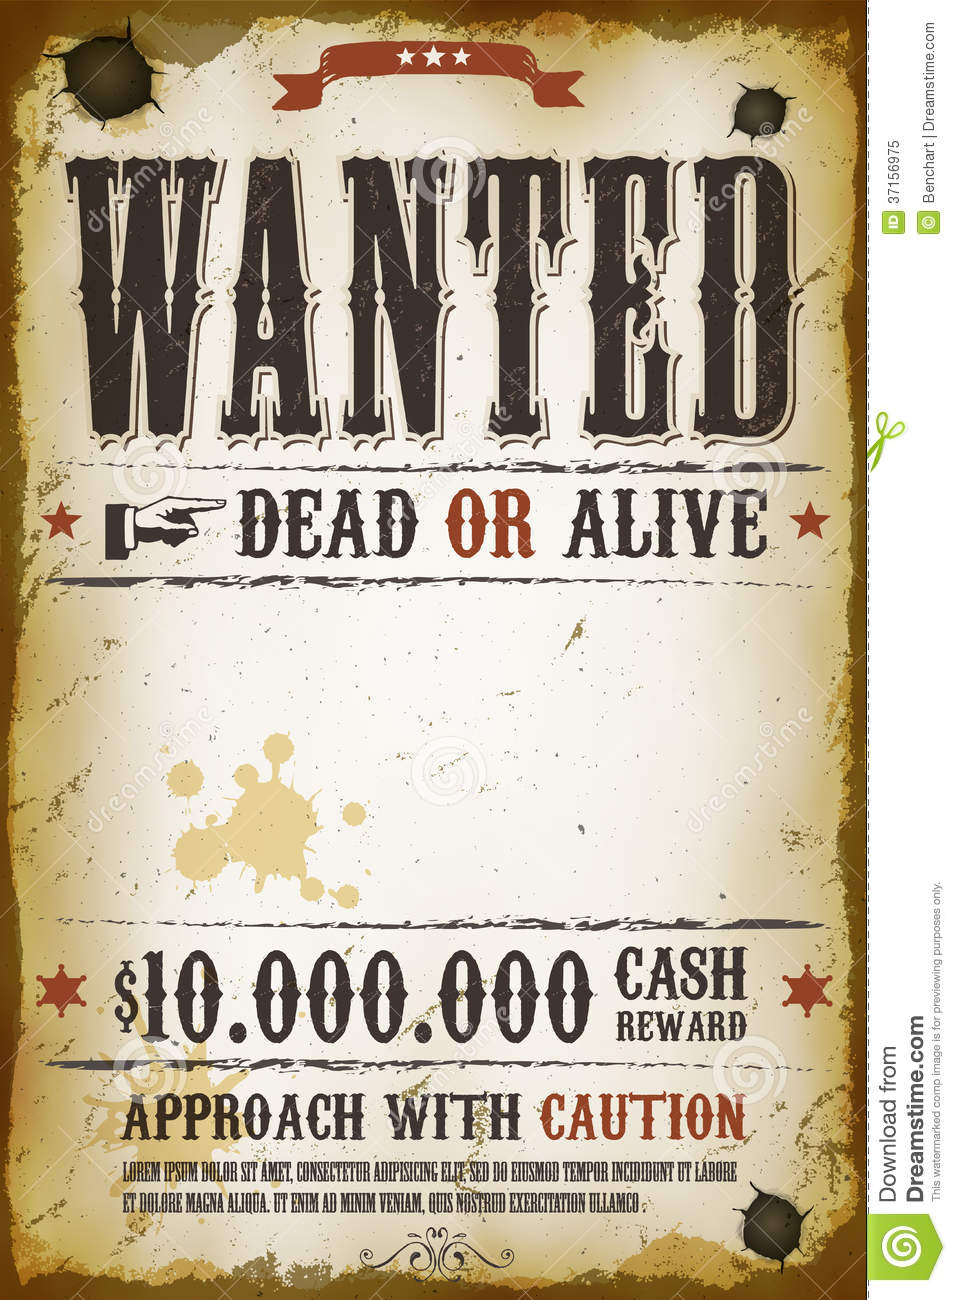 Wanted reward template toneelgroepblik Image collections